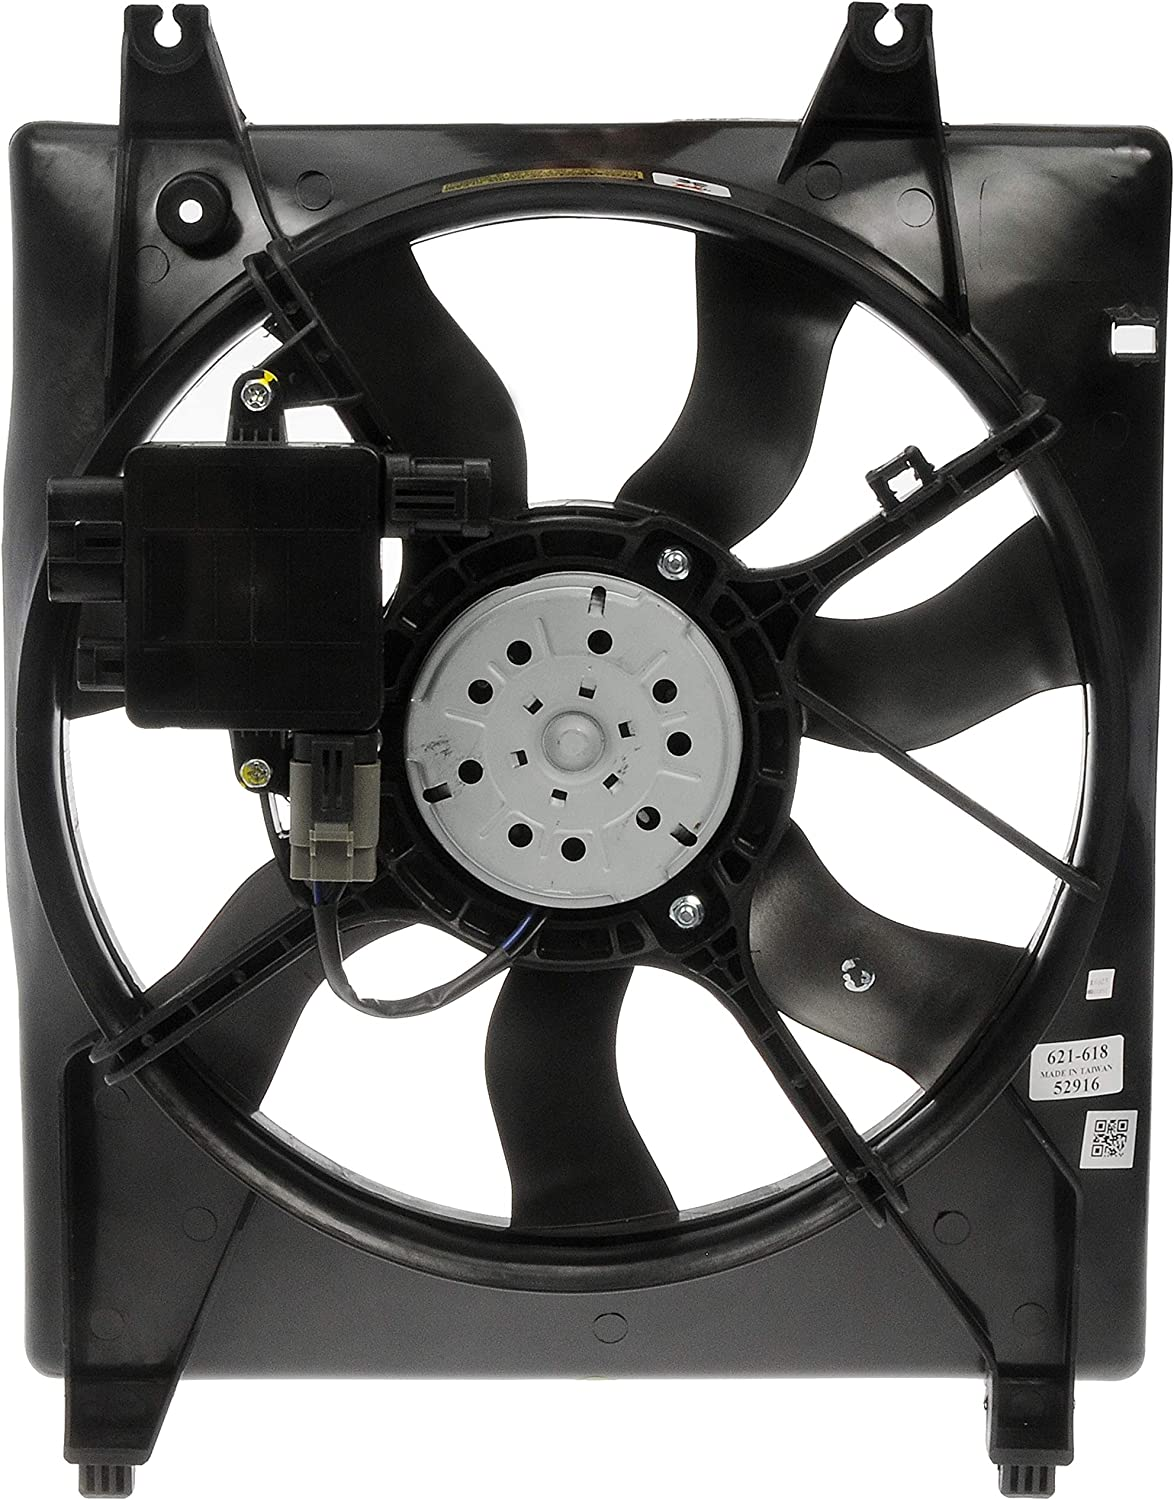 Dorman 621-618 Radiator Fan Assembly with Controller for Select Hyundai / Kia Models